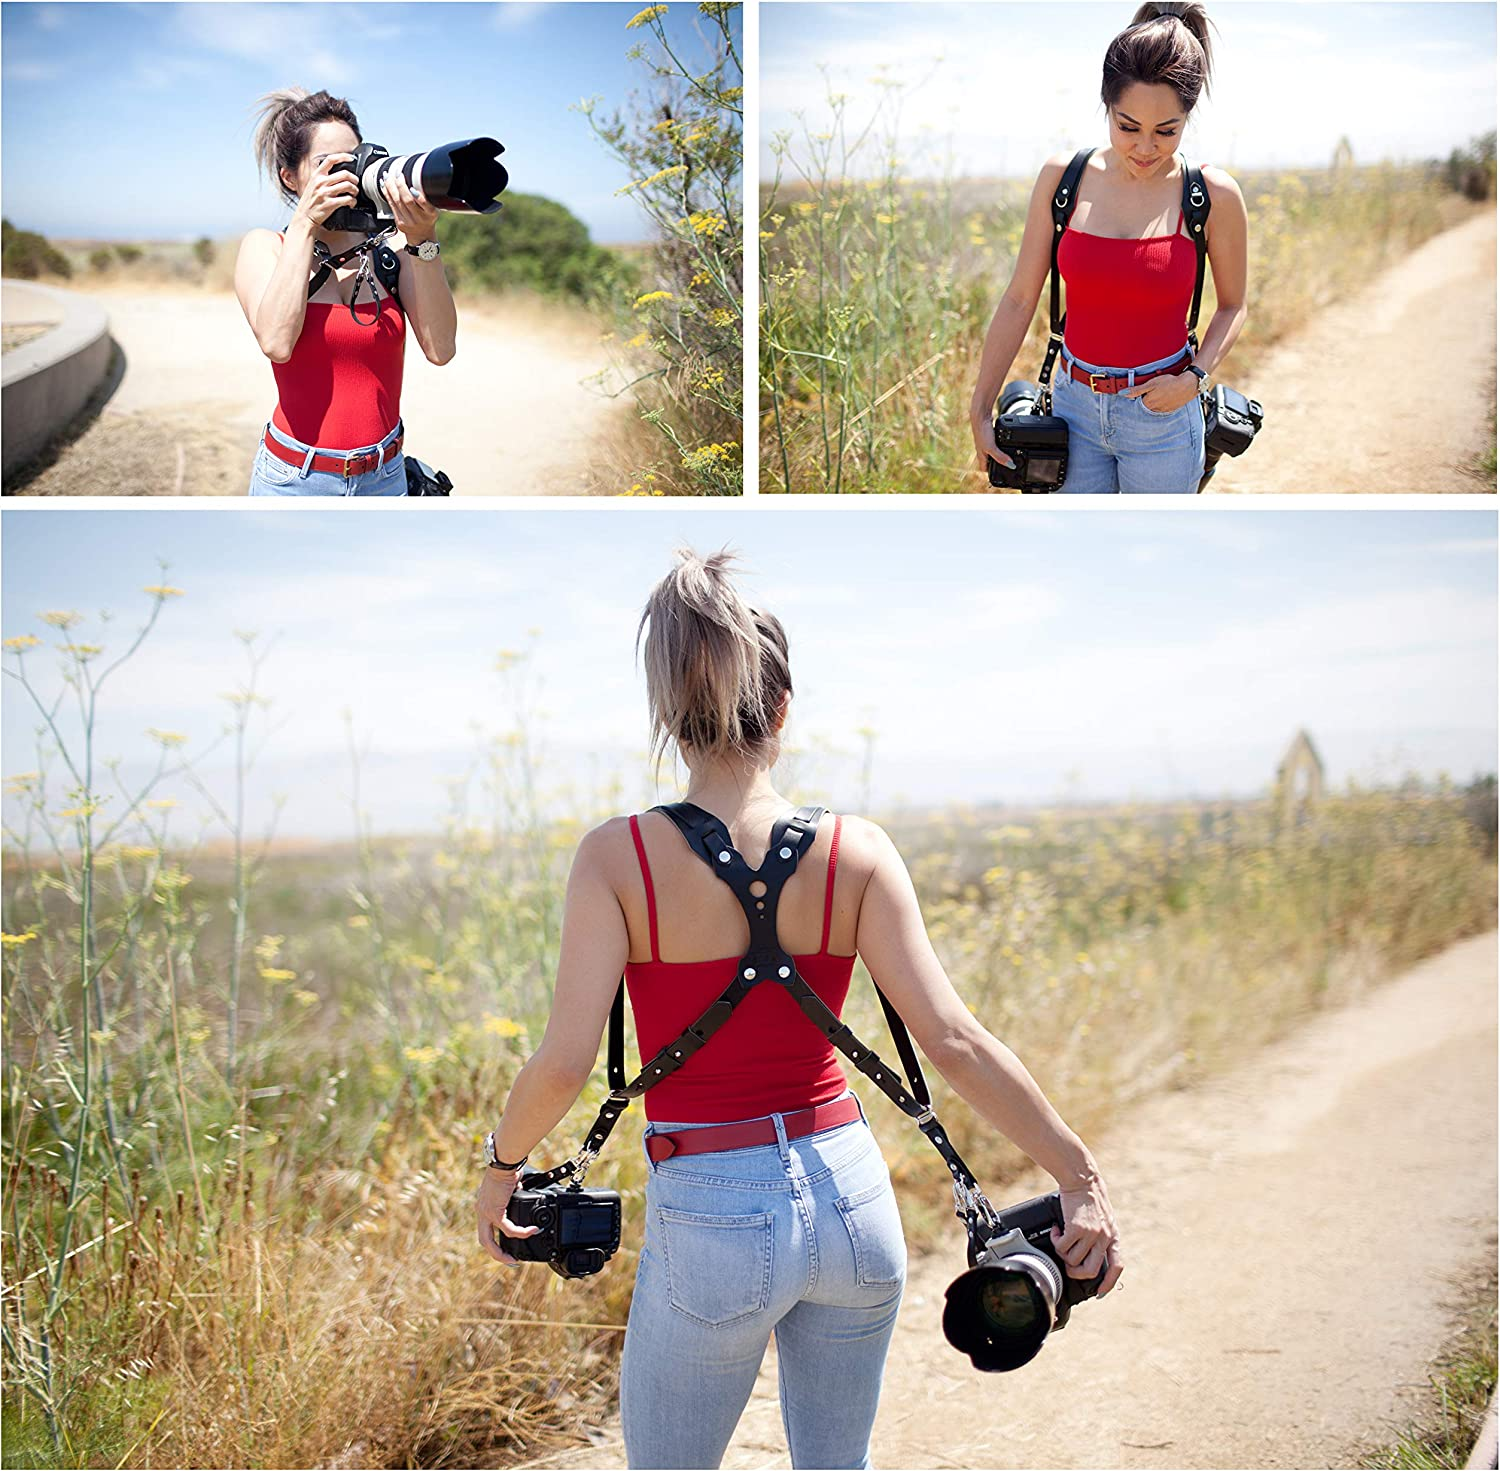 DLSR Sling /& Strap RL Handcrafts Clydesdale Lite-Dual Handmade Leather Camera Harness Point /& Shoot Made in The USA Mirrorless